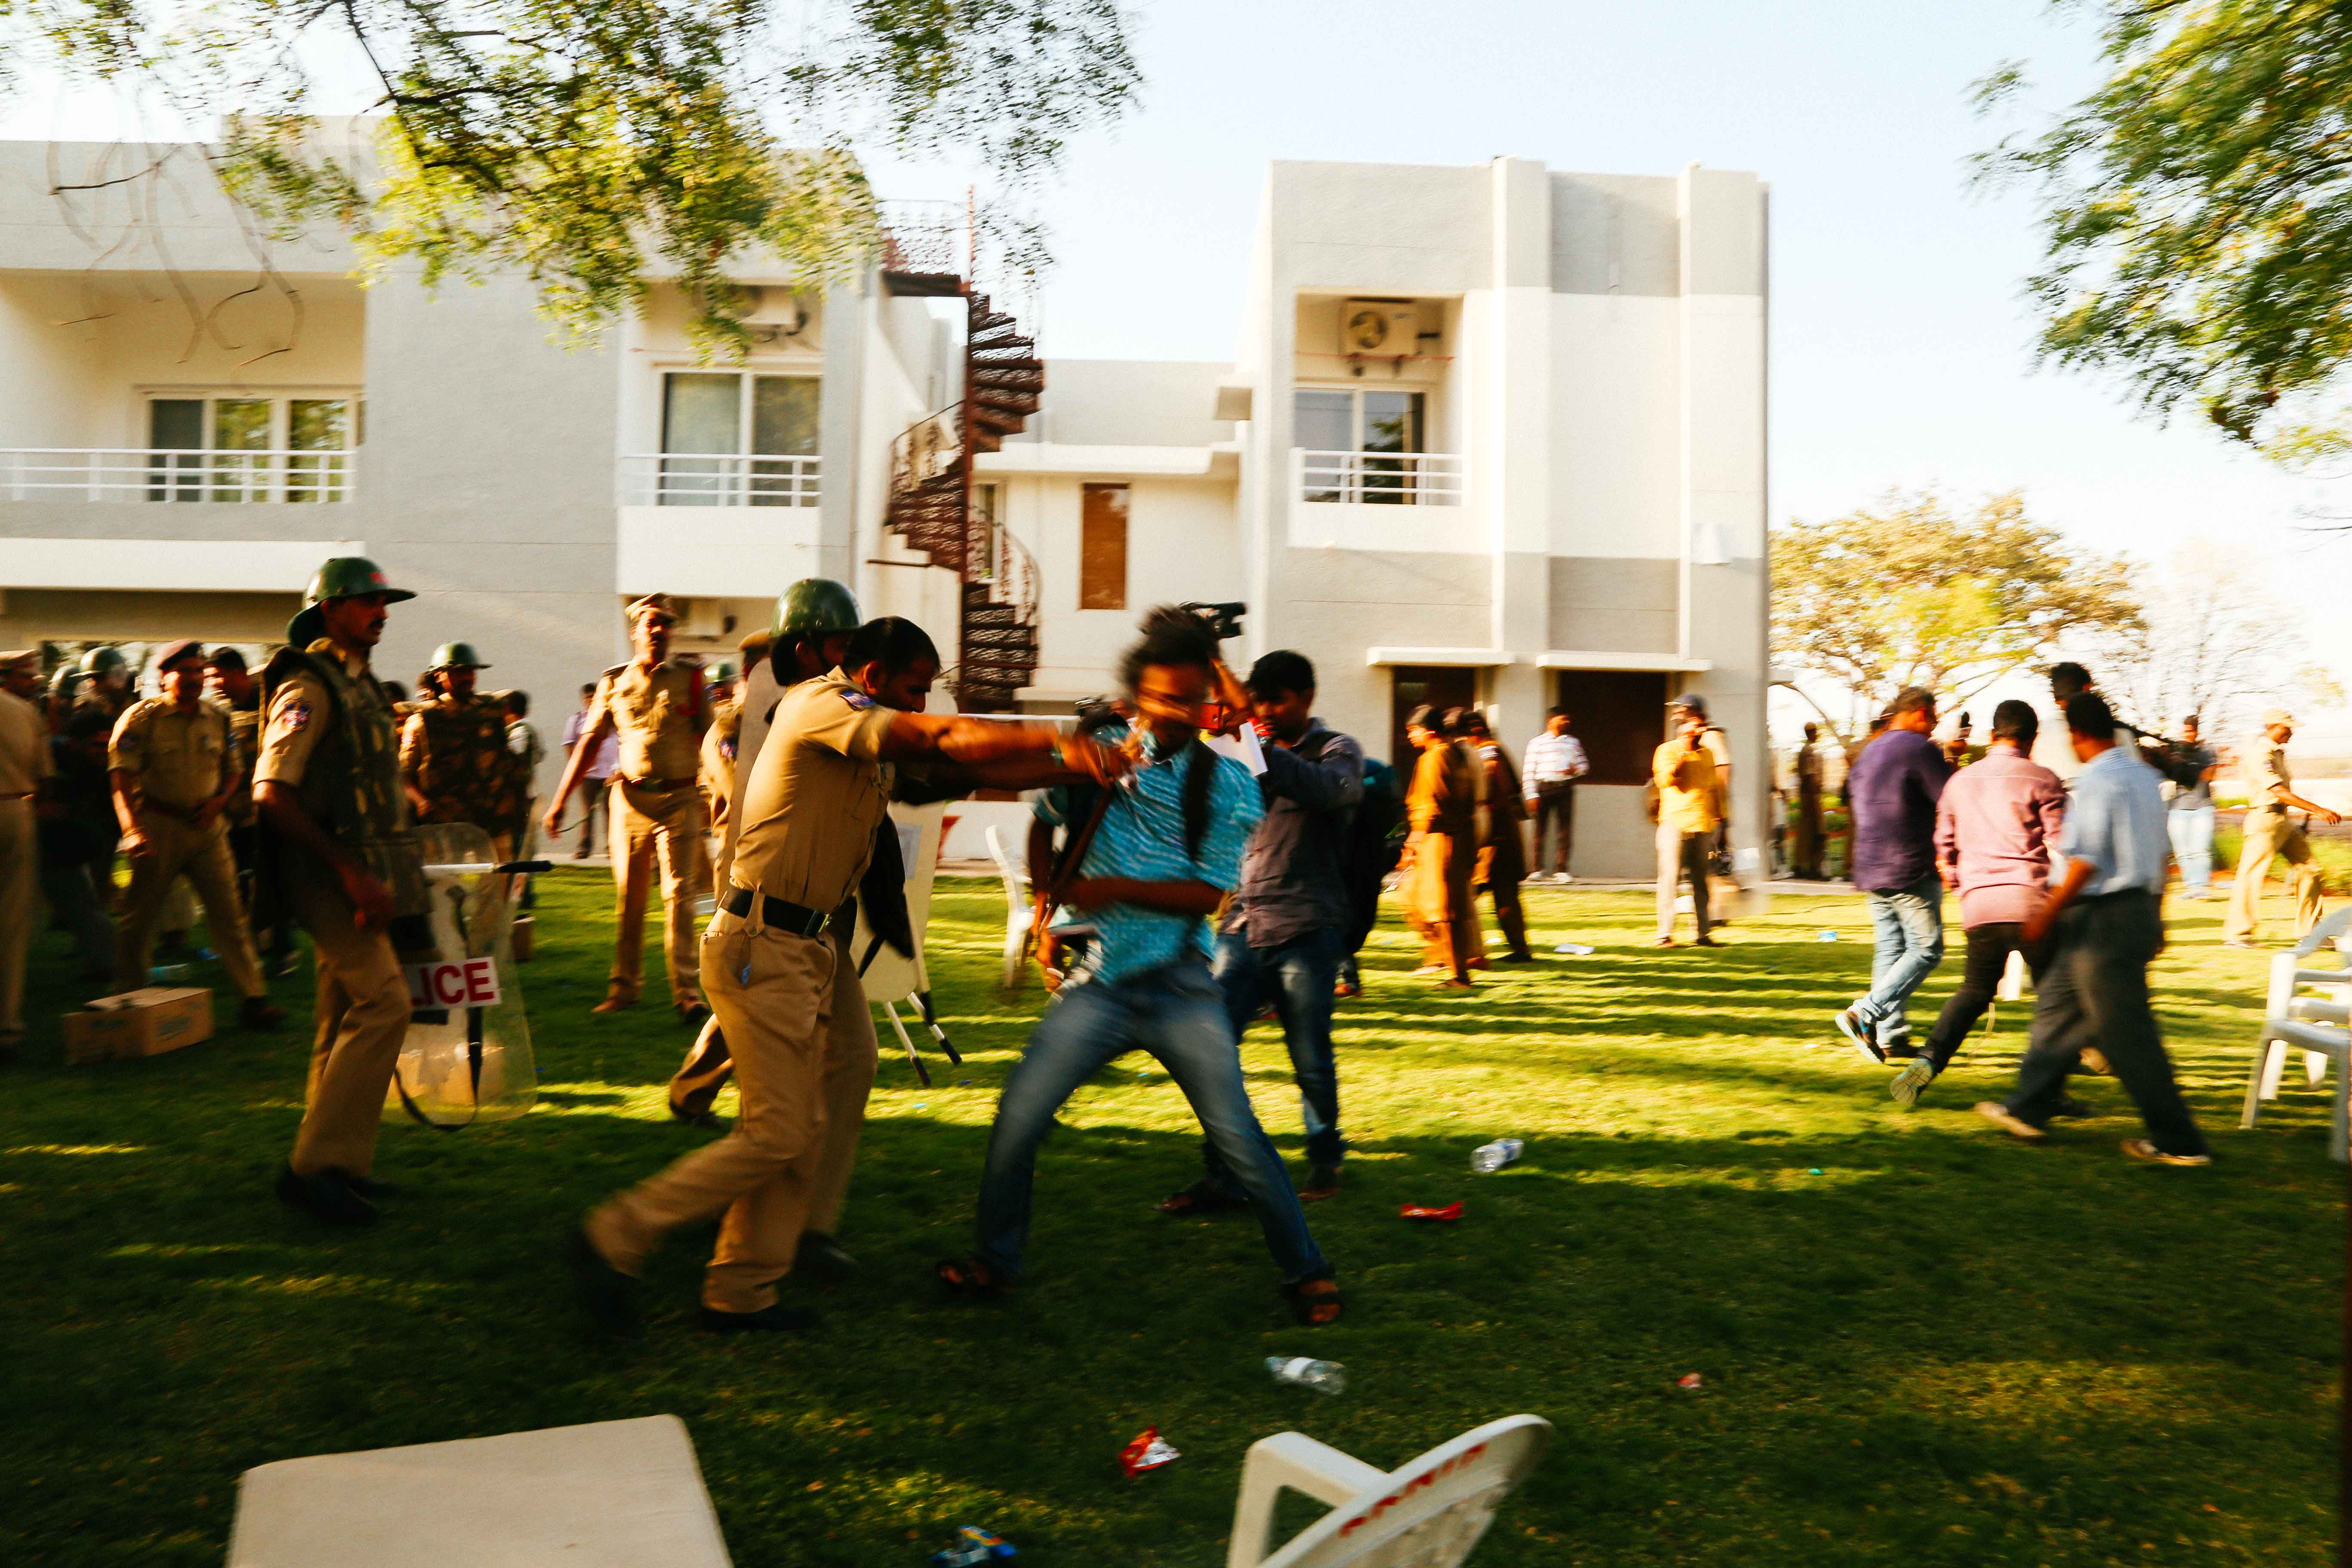 Students were brutally assaulted